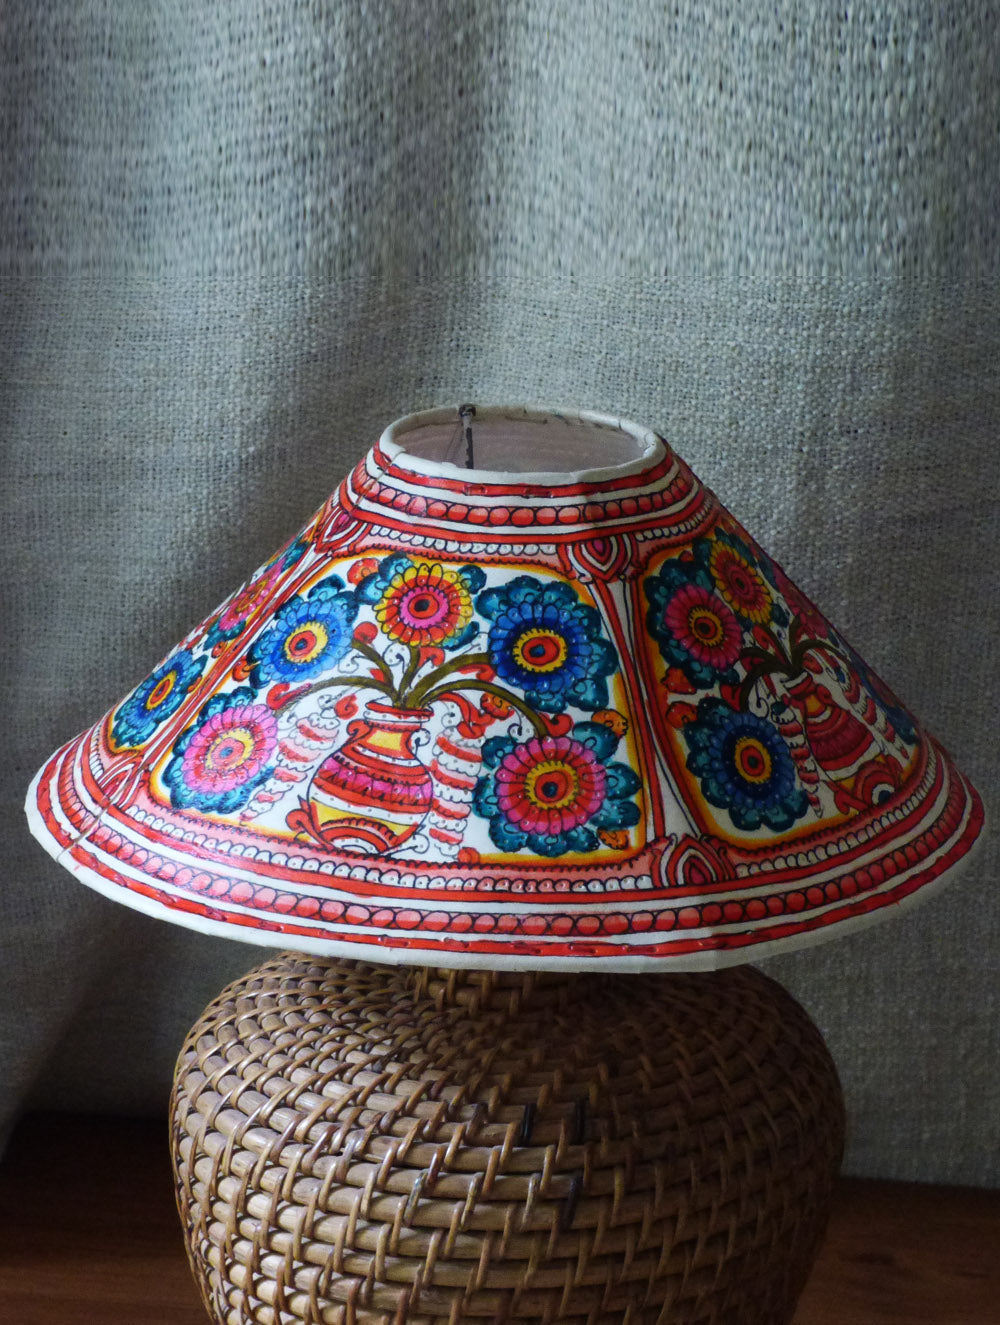 Lamps lamp shades the india craft house andhra leather craft table lamp shade the india craft house aloadofball Image collections